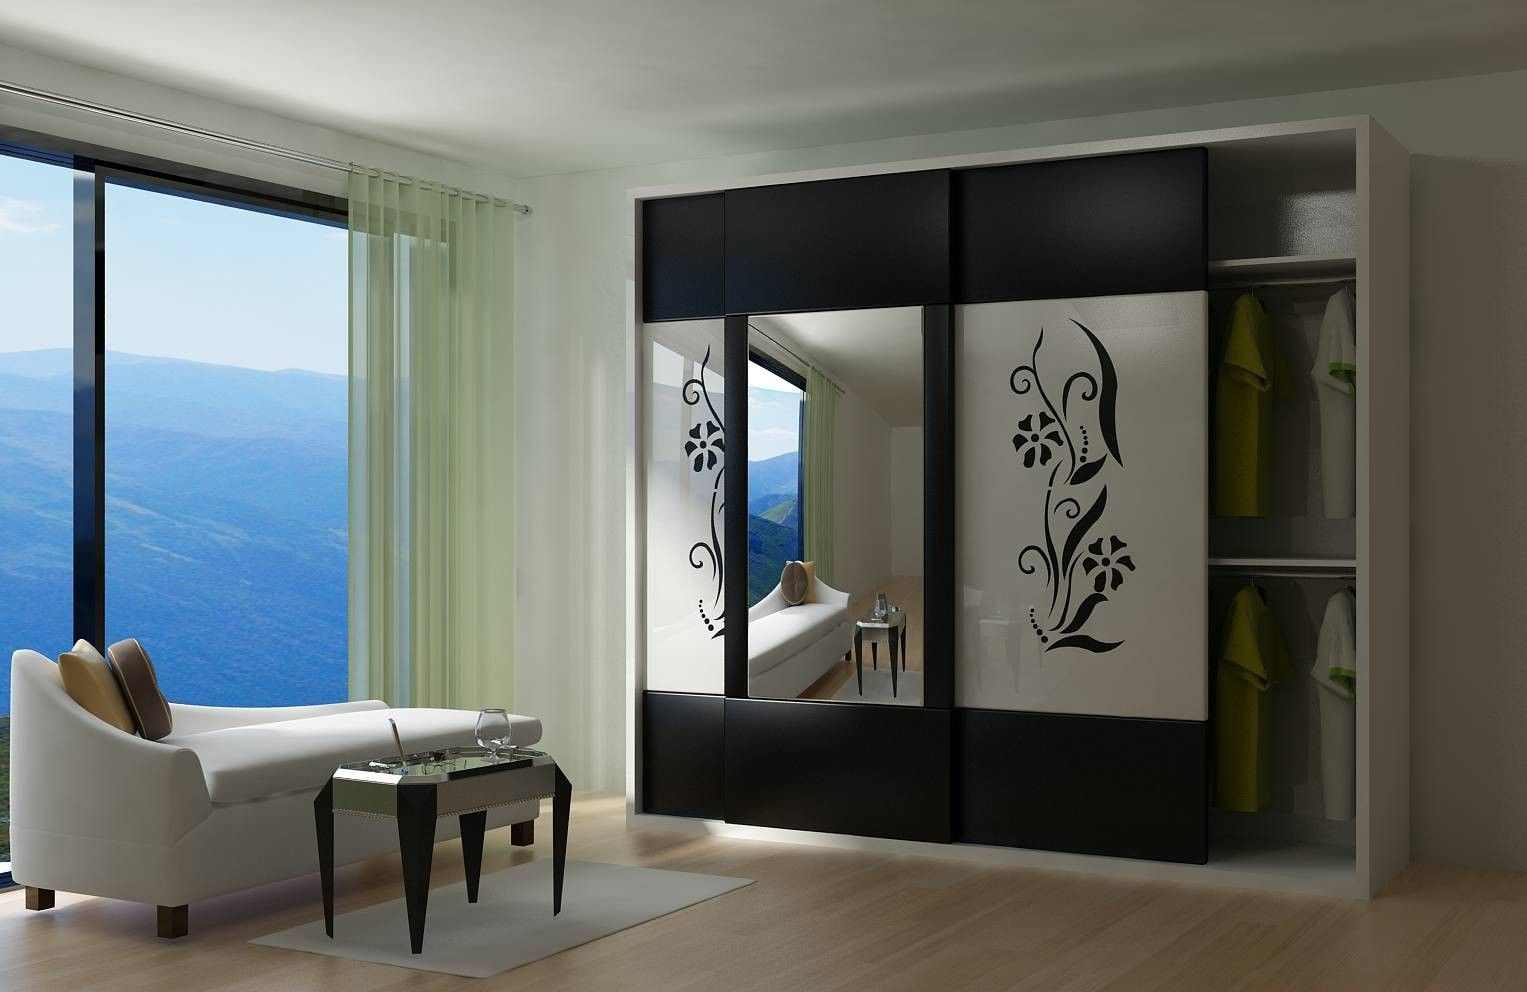 Modern wardrobe with sliding door and large mirror idea feat luxury chaise lounge plus black side